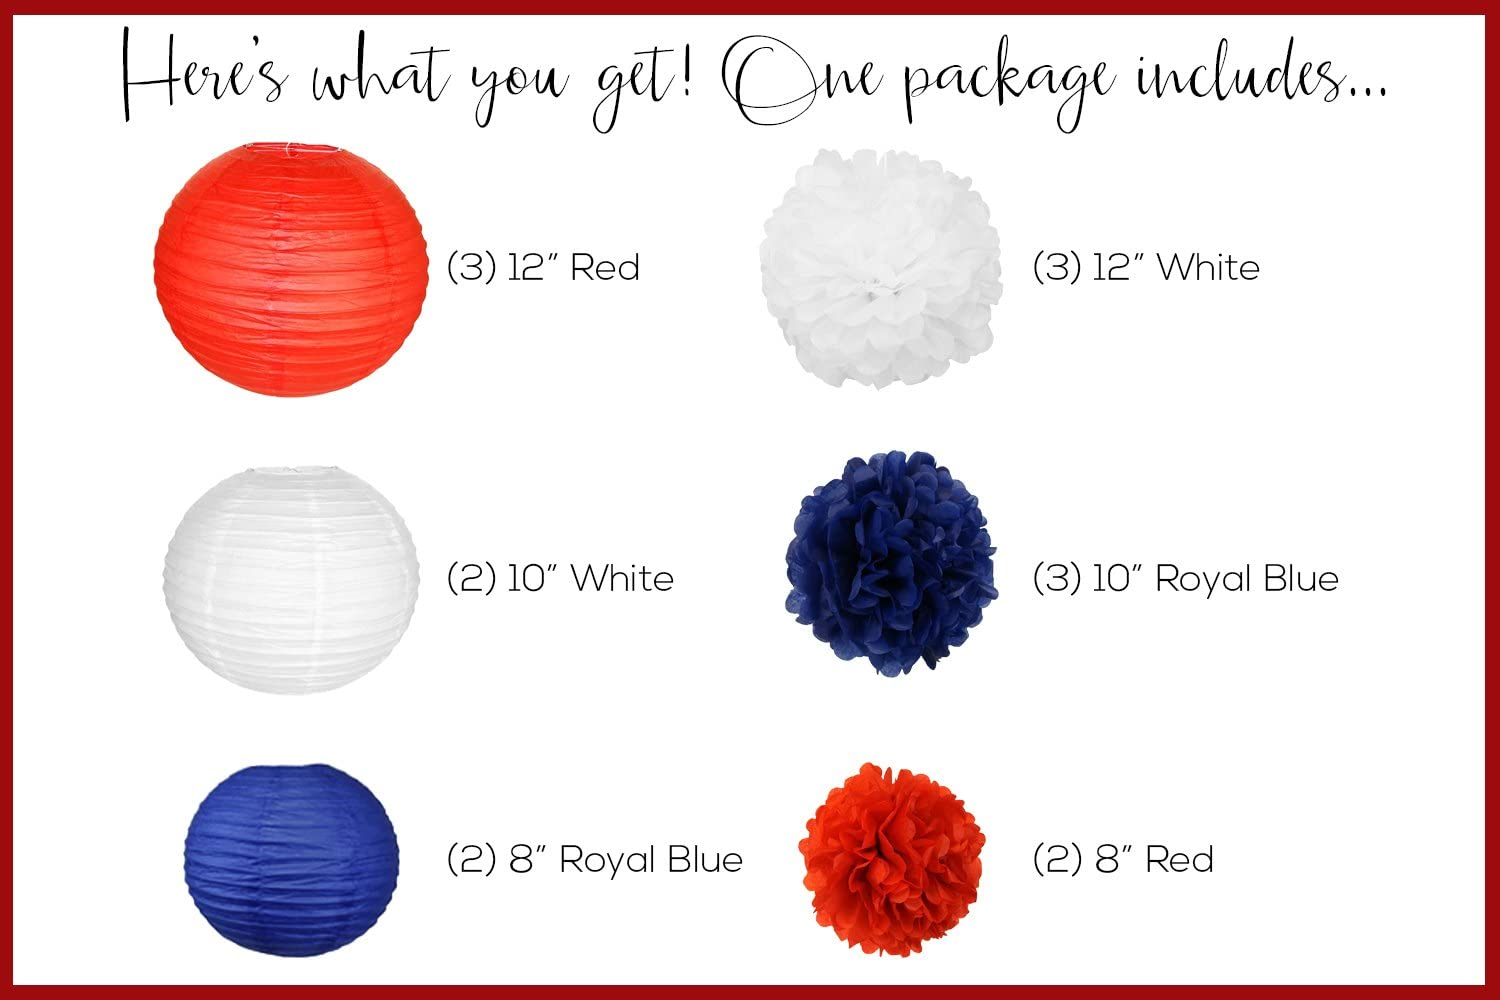 15pcs Just Artifacts Decorative Paper Party Pack Yellow//Blues//Reds Paper Lanterns and Pom Pom Balls